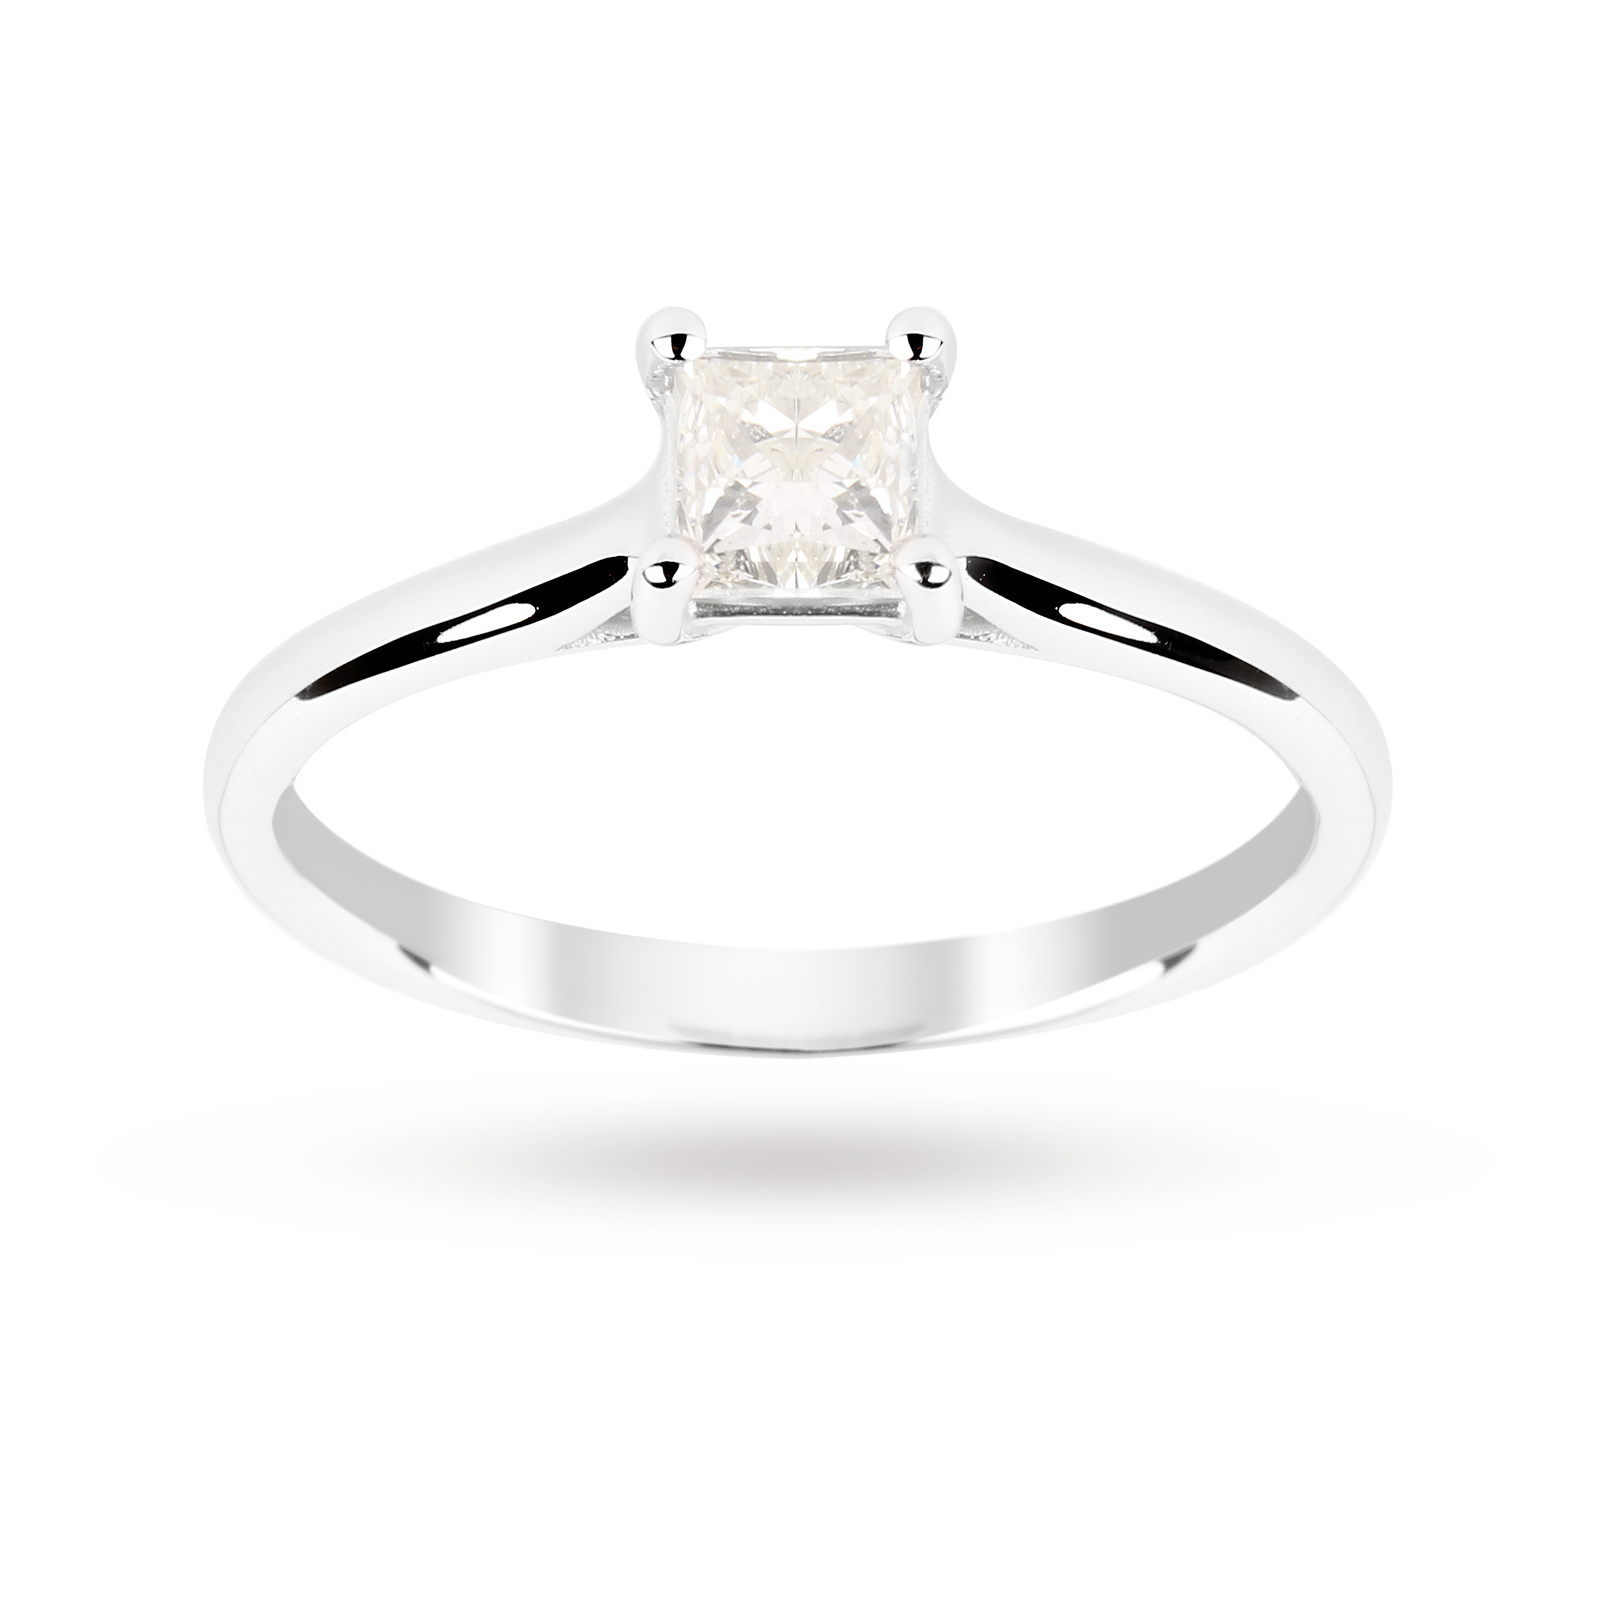 Princess Cut 0.25 Carat 4 Claw Diamond  Solitaire Ring in 18 Carat White Gold